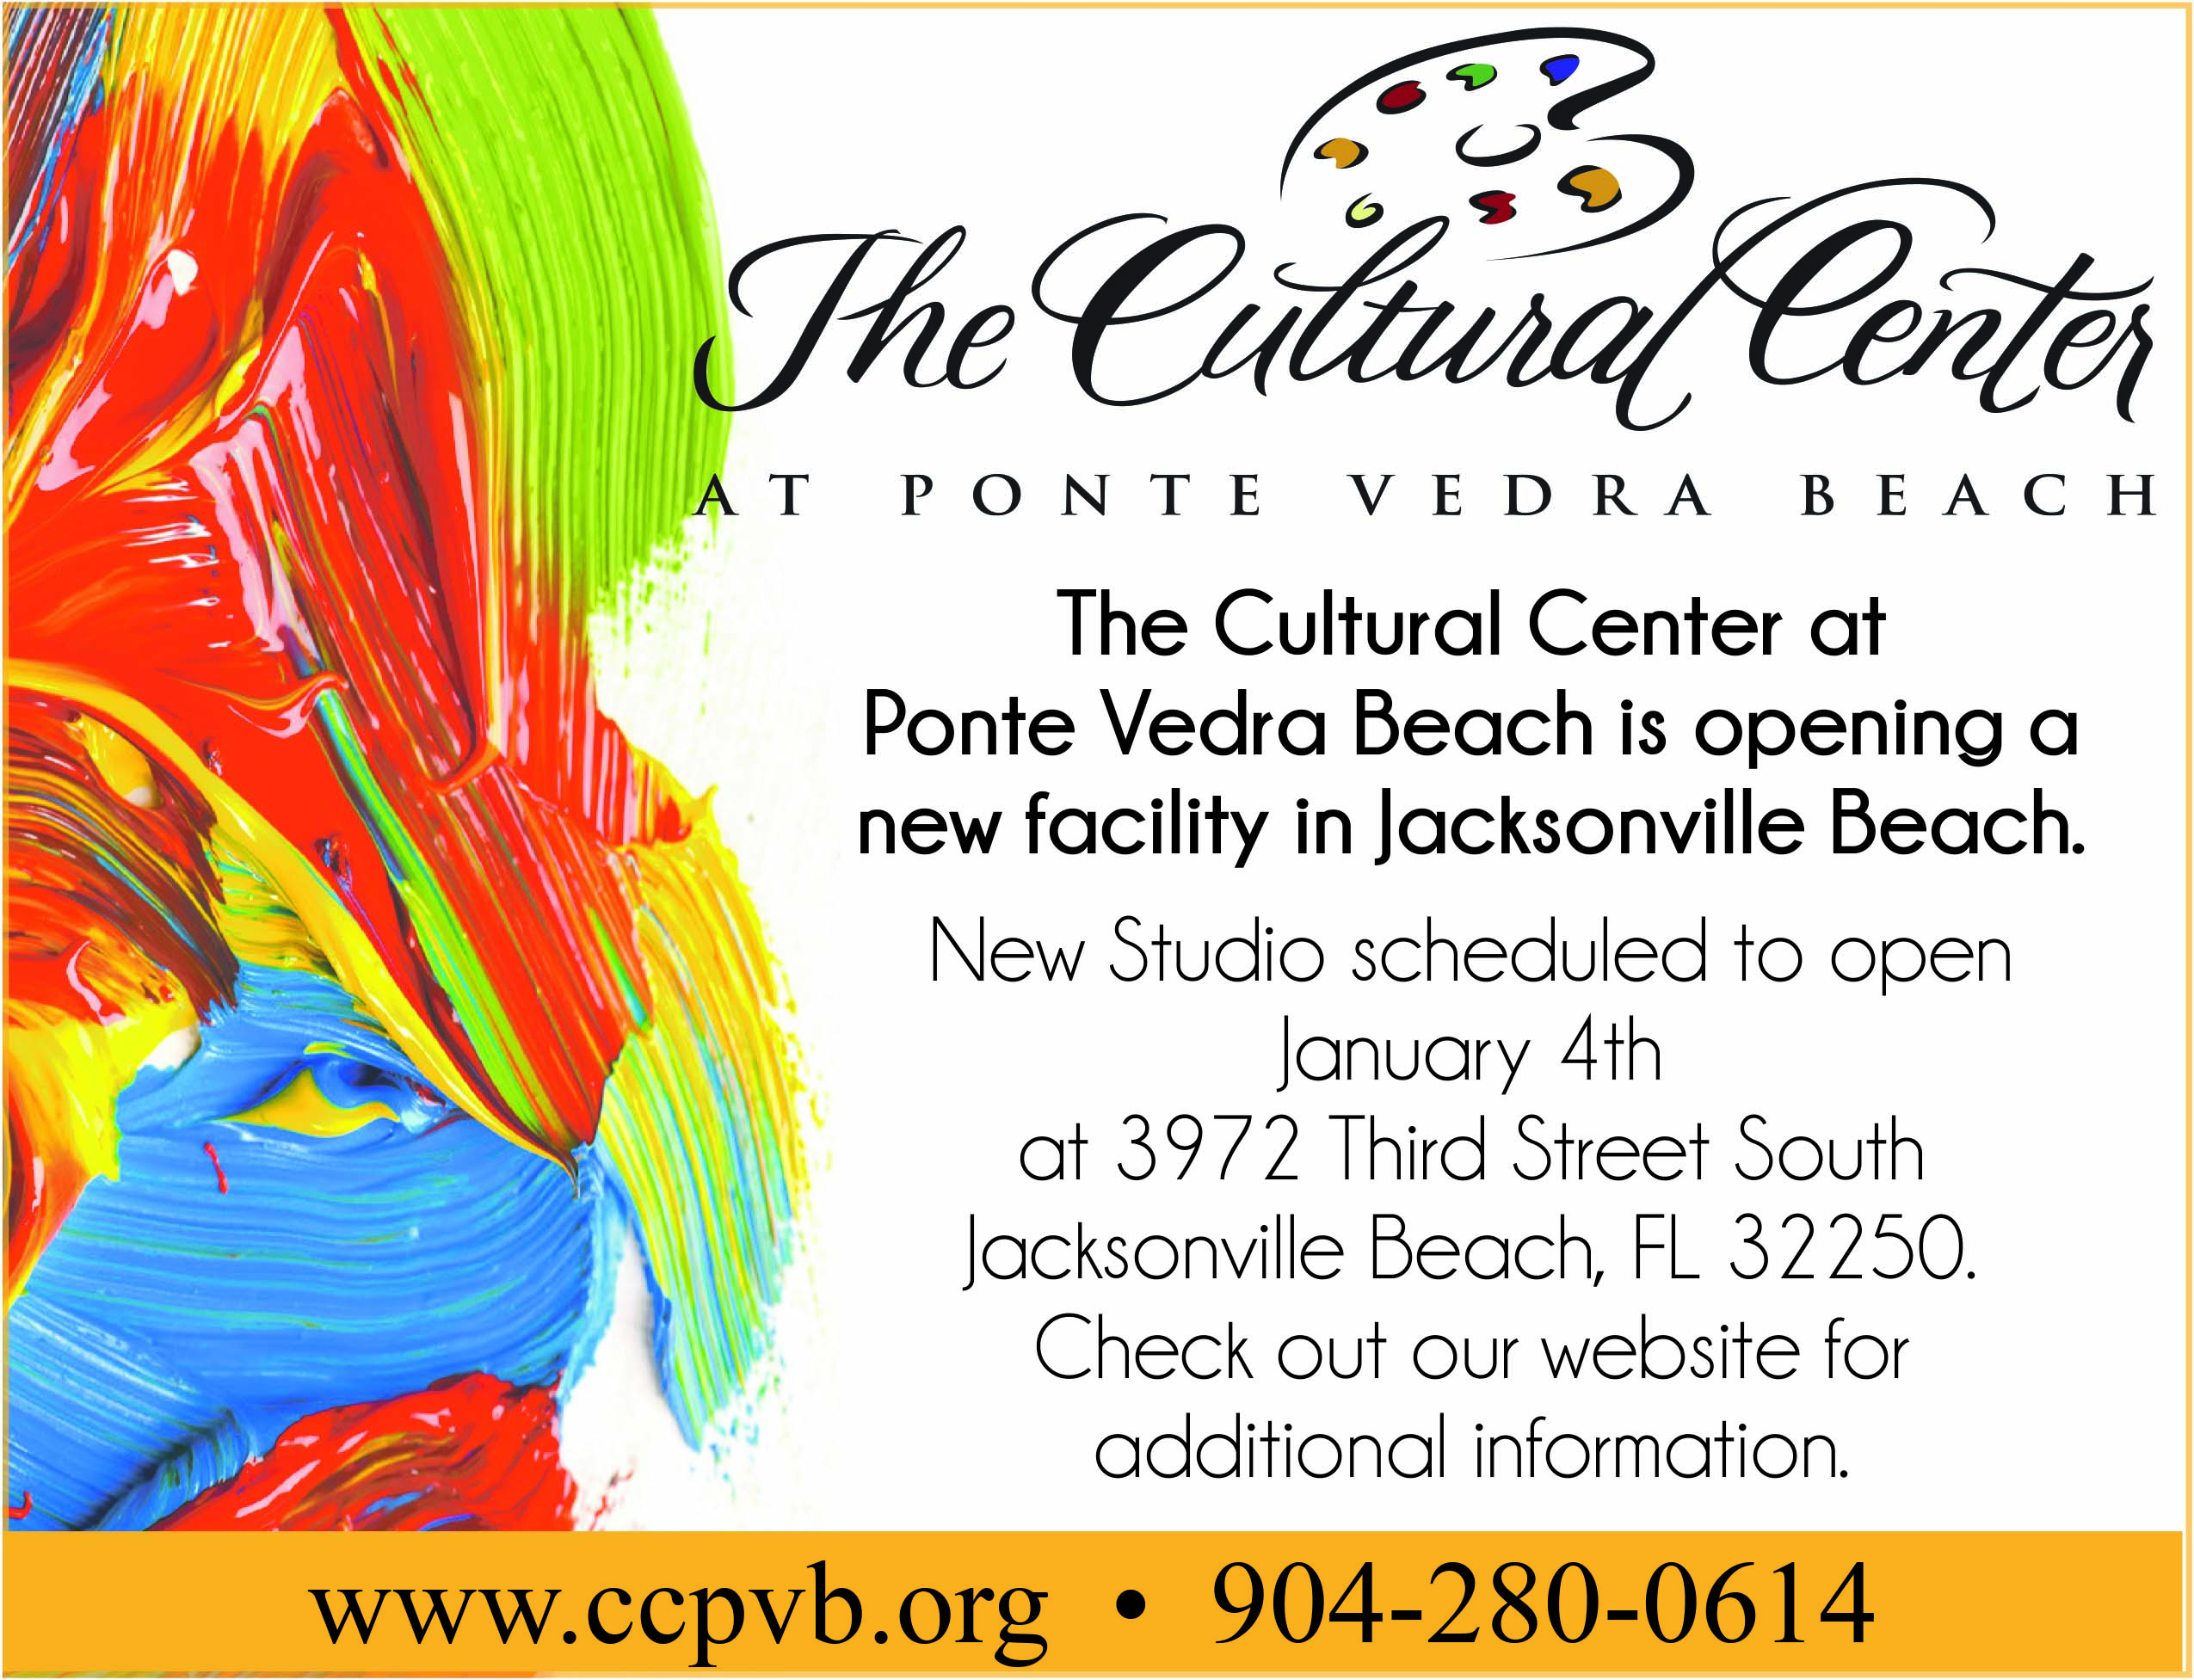 The cultural center at ponte vedra beach is opening a new facility in Jacksonville Beach.